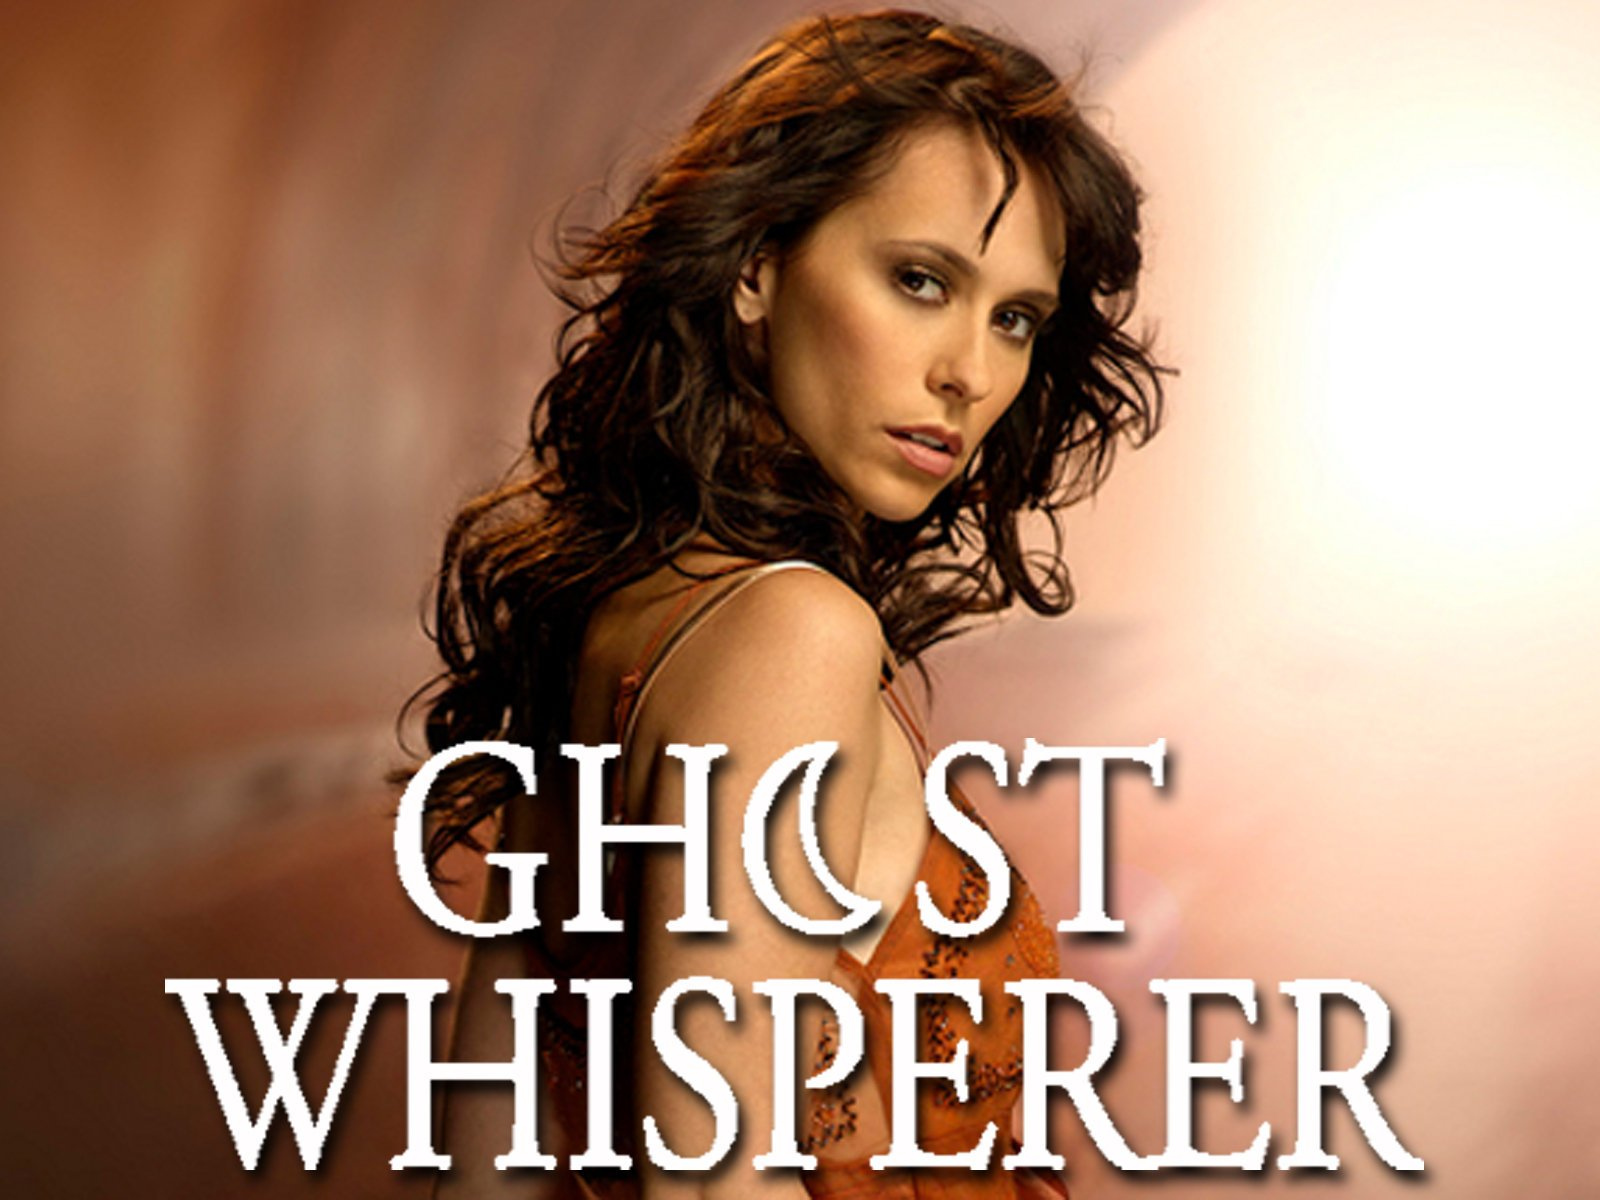 Accept. the erotic ghost whisperer rapidshare